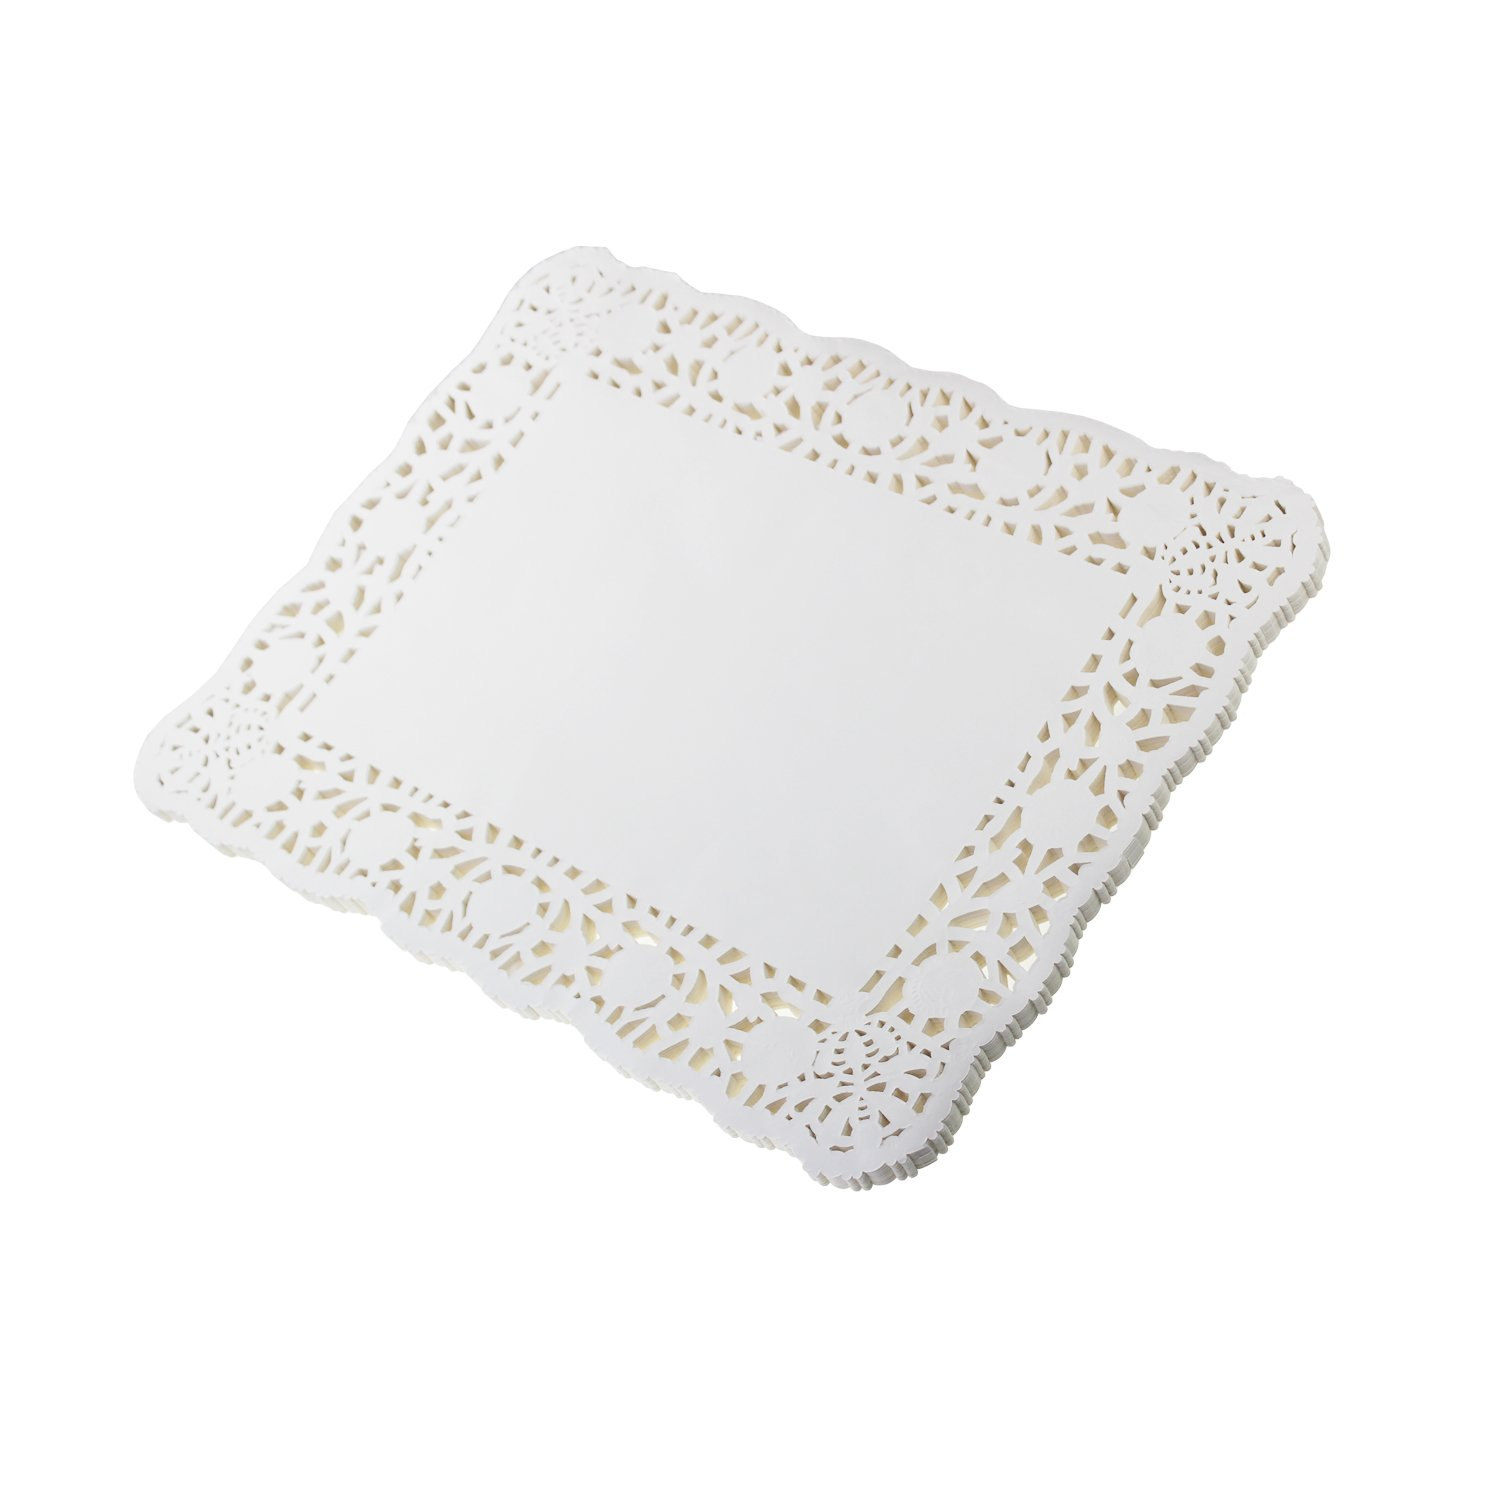 8 x 12 LJY 100 Pieces Off-White Lace Rectangle Paper Doilies Cake Packaging Pads Wedding Tableware Decoration